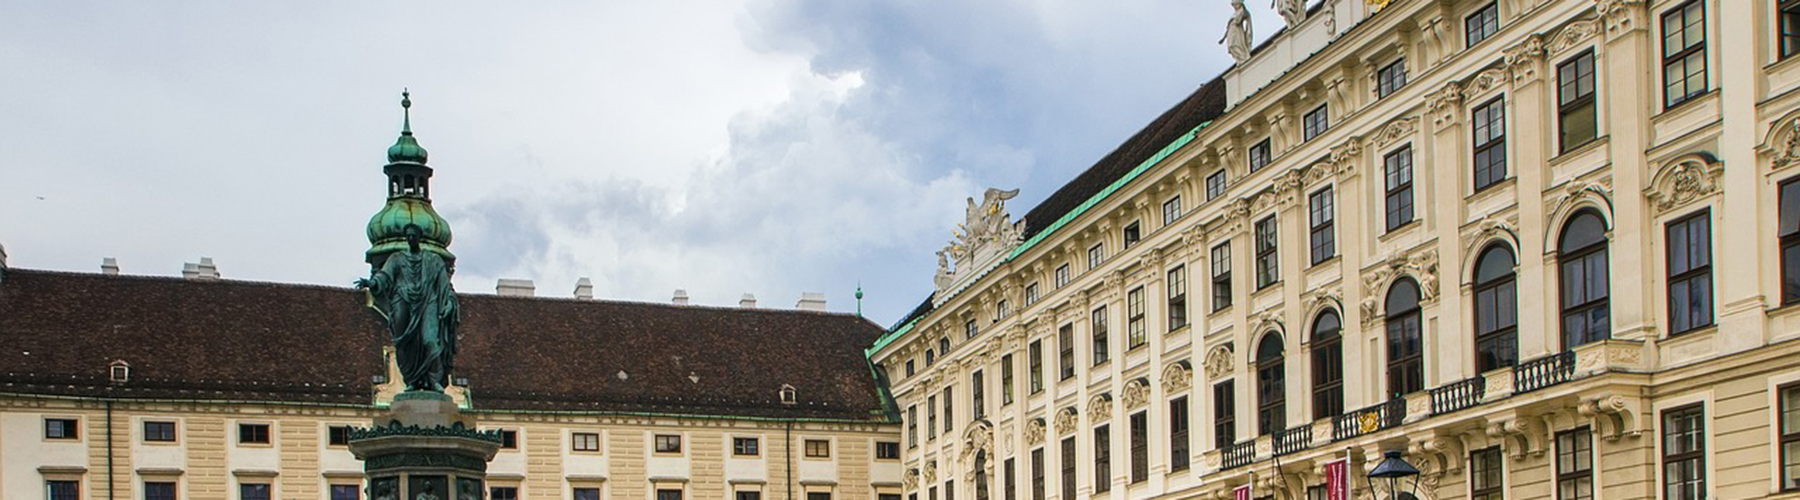 Vienna – Hostels close to City Center. Maps of Vienna, Photos and Reviews for each Hostel in Vienna.